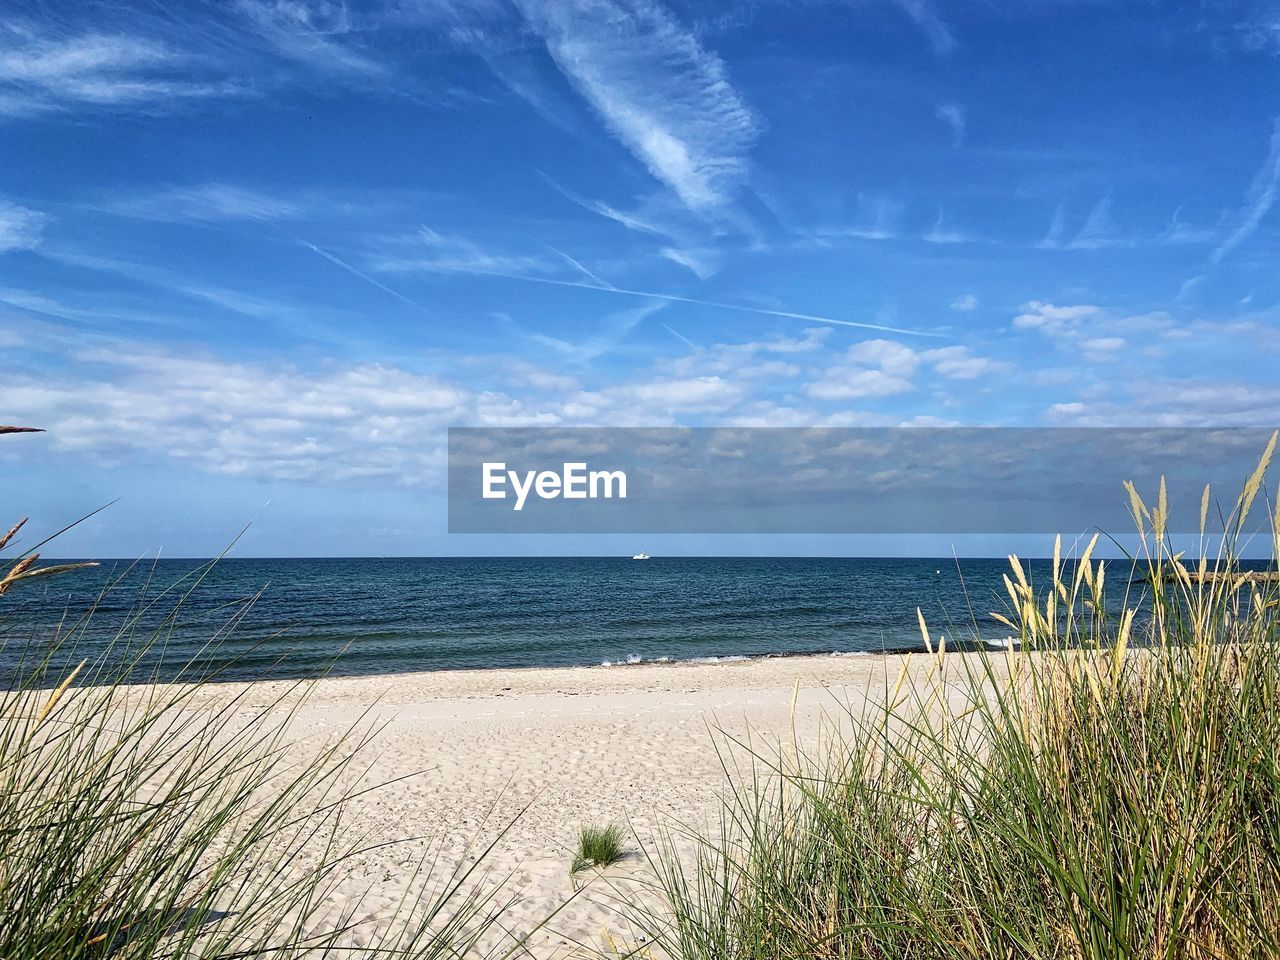 sea, water, sky, horizon over water, beach, beauty in nature, horizon, grass, scenics - nature, tranquility, cloud - sky, land, nature, plant, tranquil scene, sand, marram grass, no people, day, outdoors